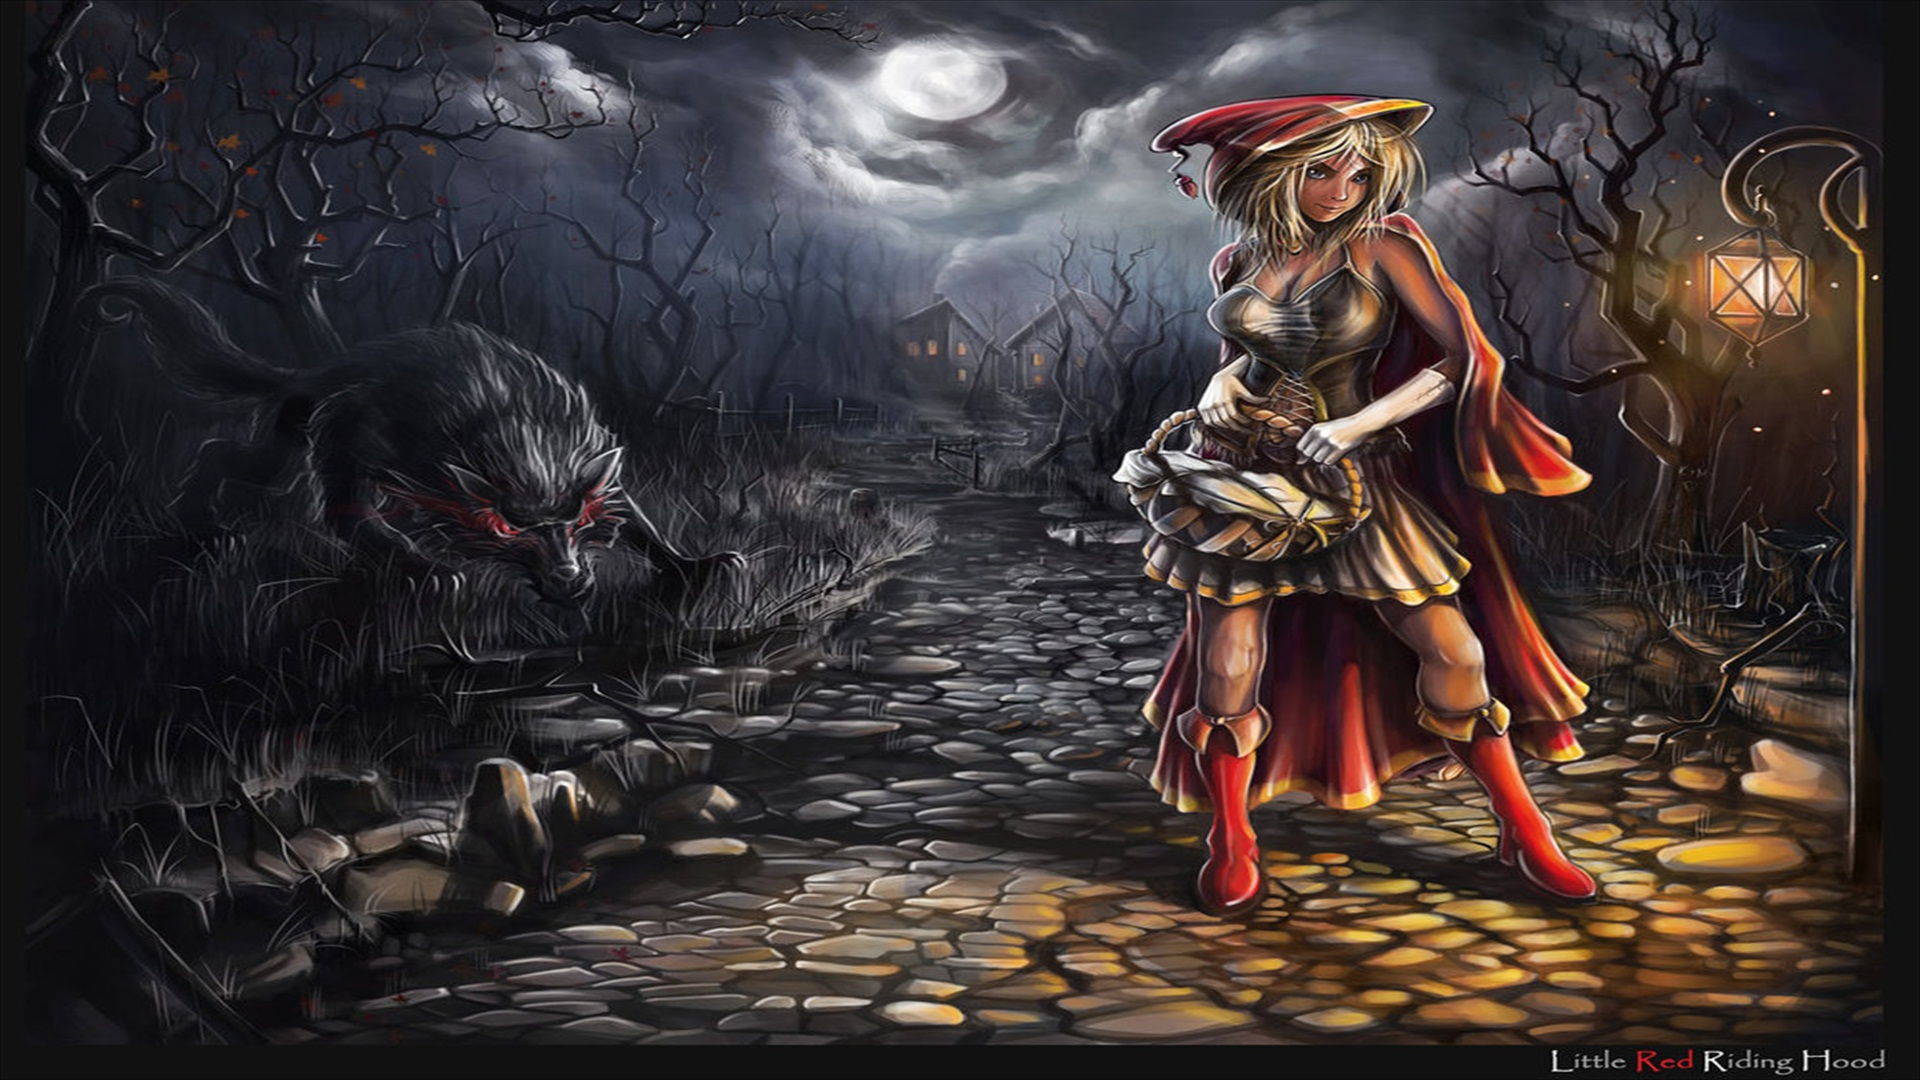 Free Download Fantasy Red Riding Hood Wallpaper 1920x1080 For